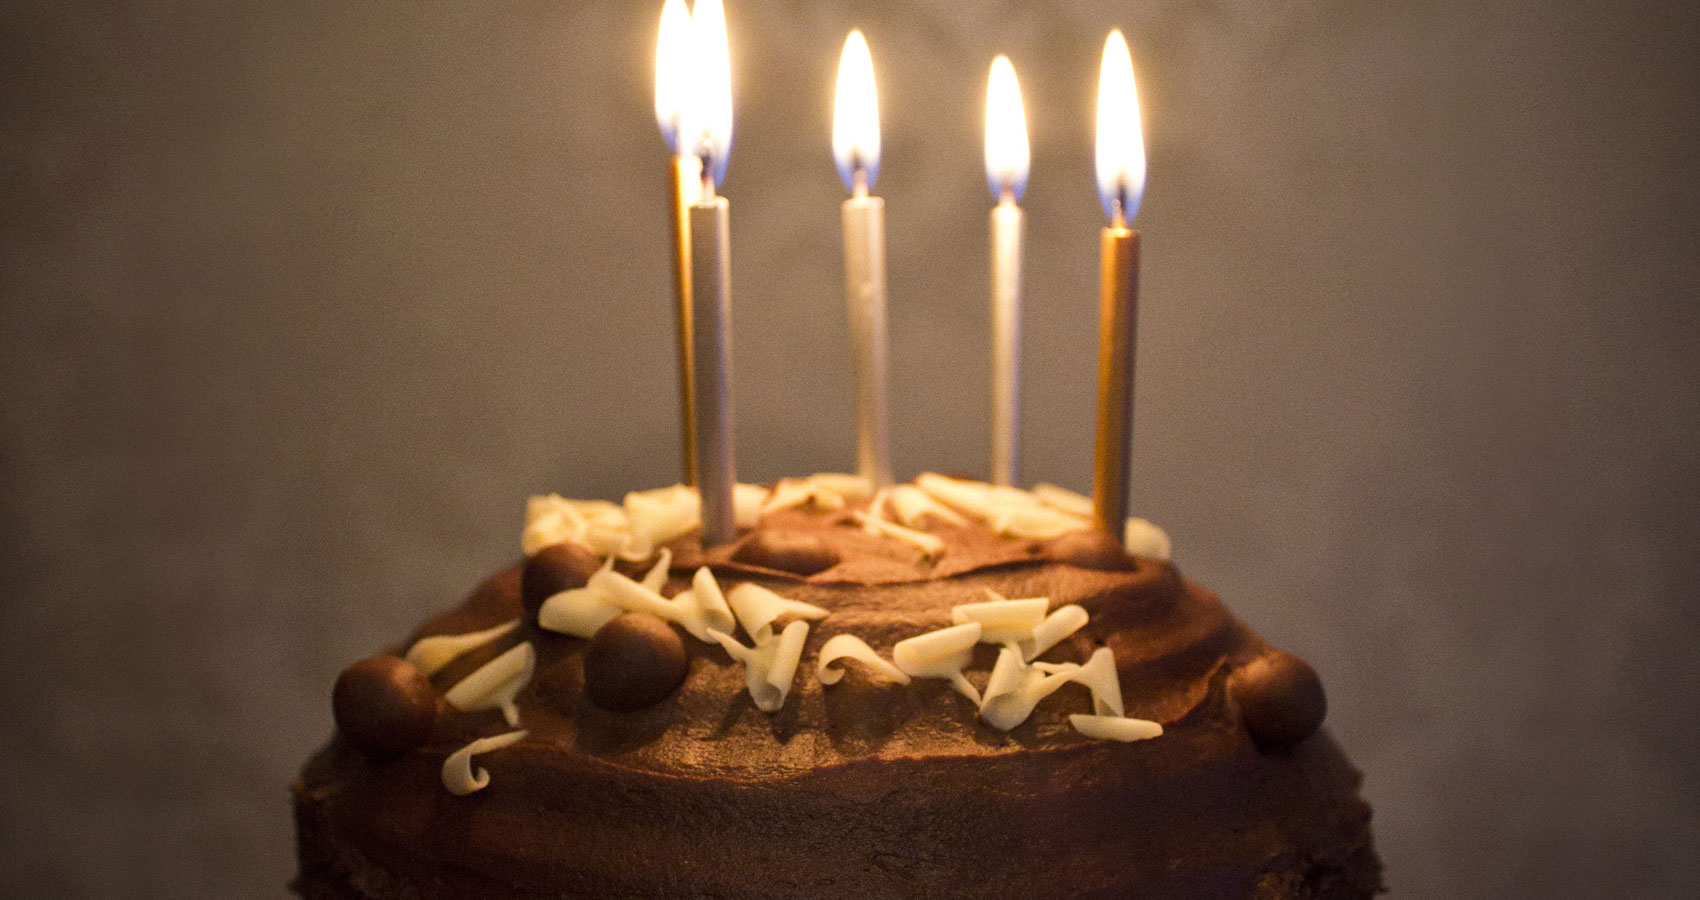 On My Birthday, flash fiction written by Elke Margaretta at Spillwords.com